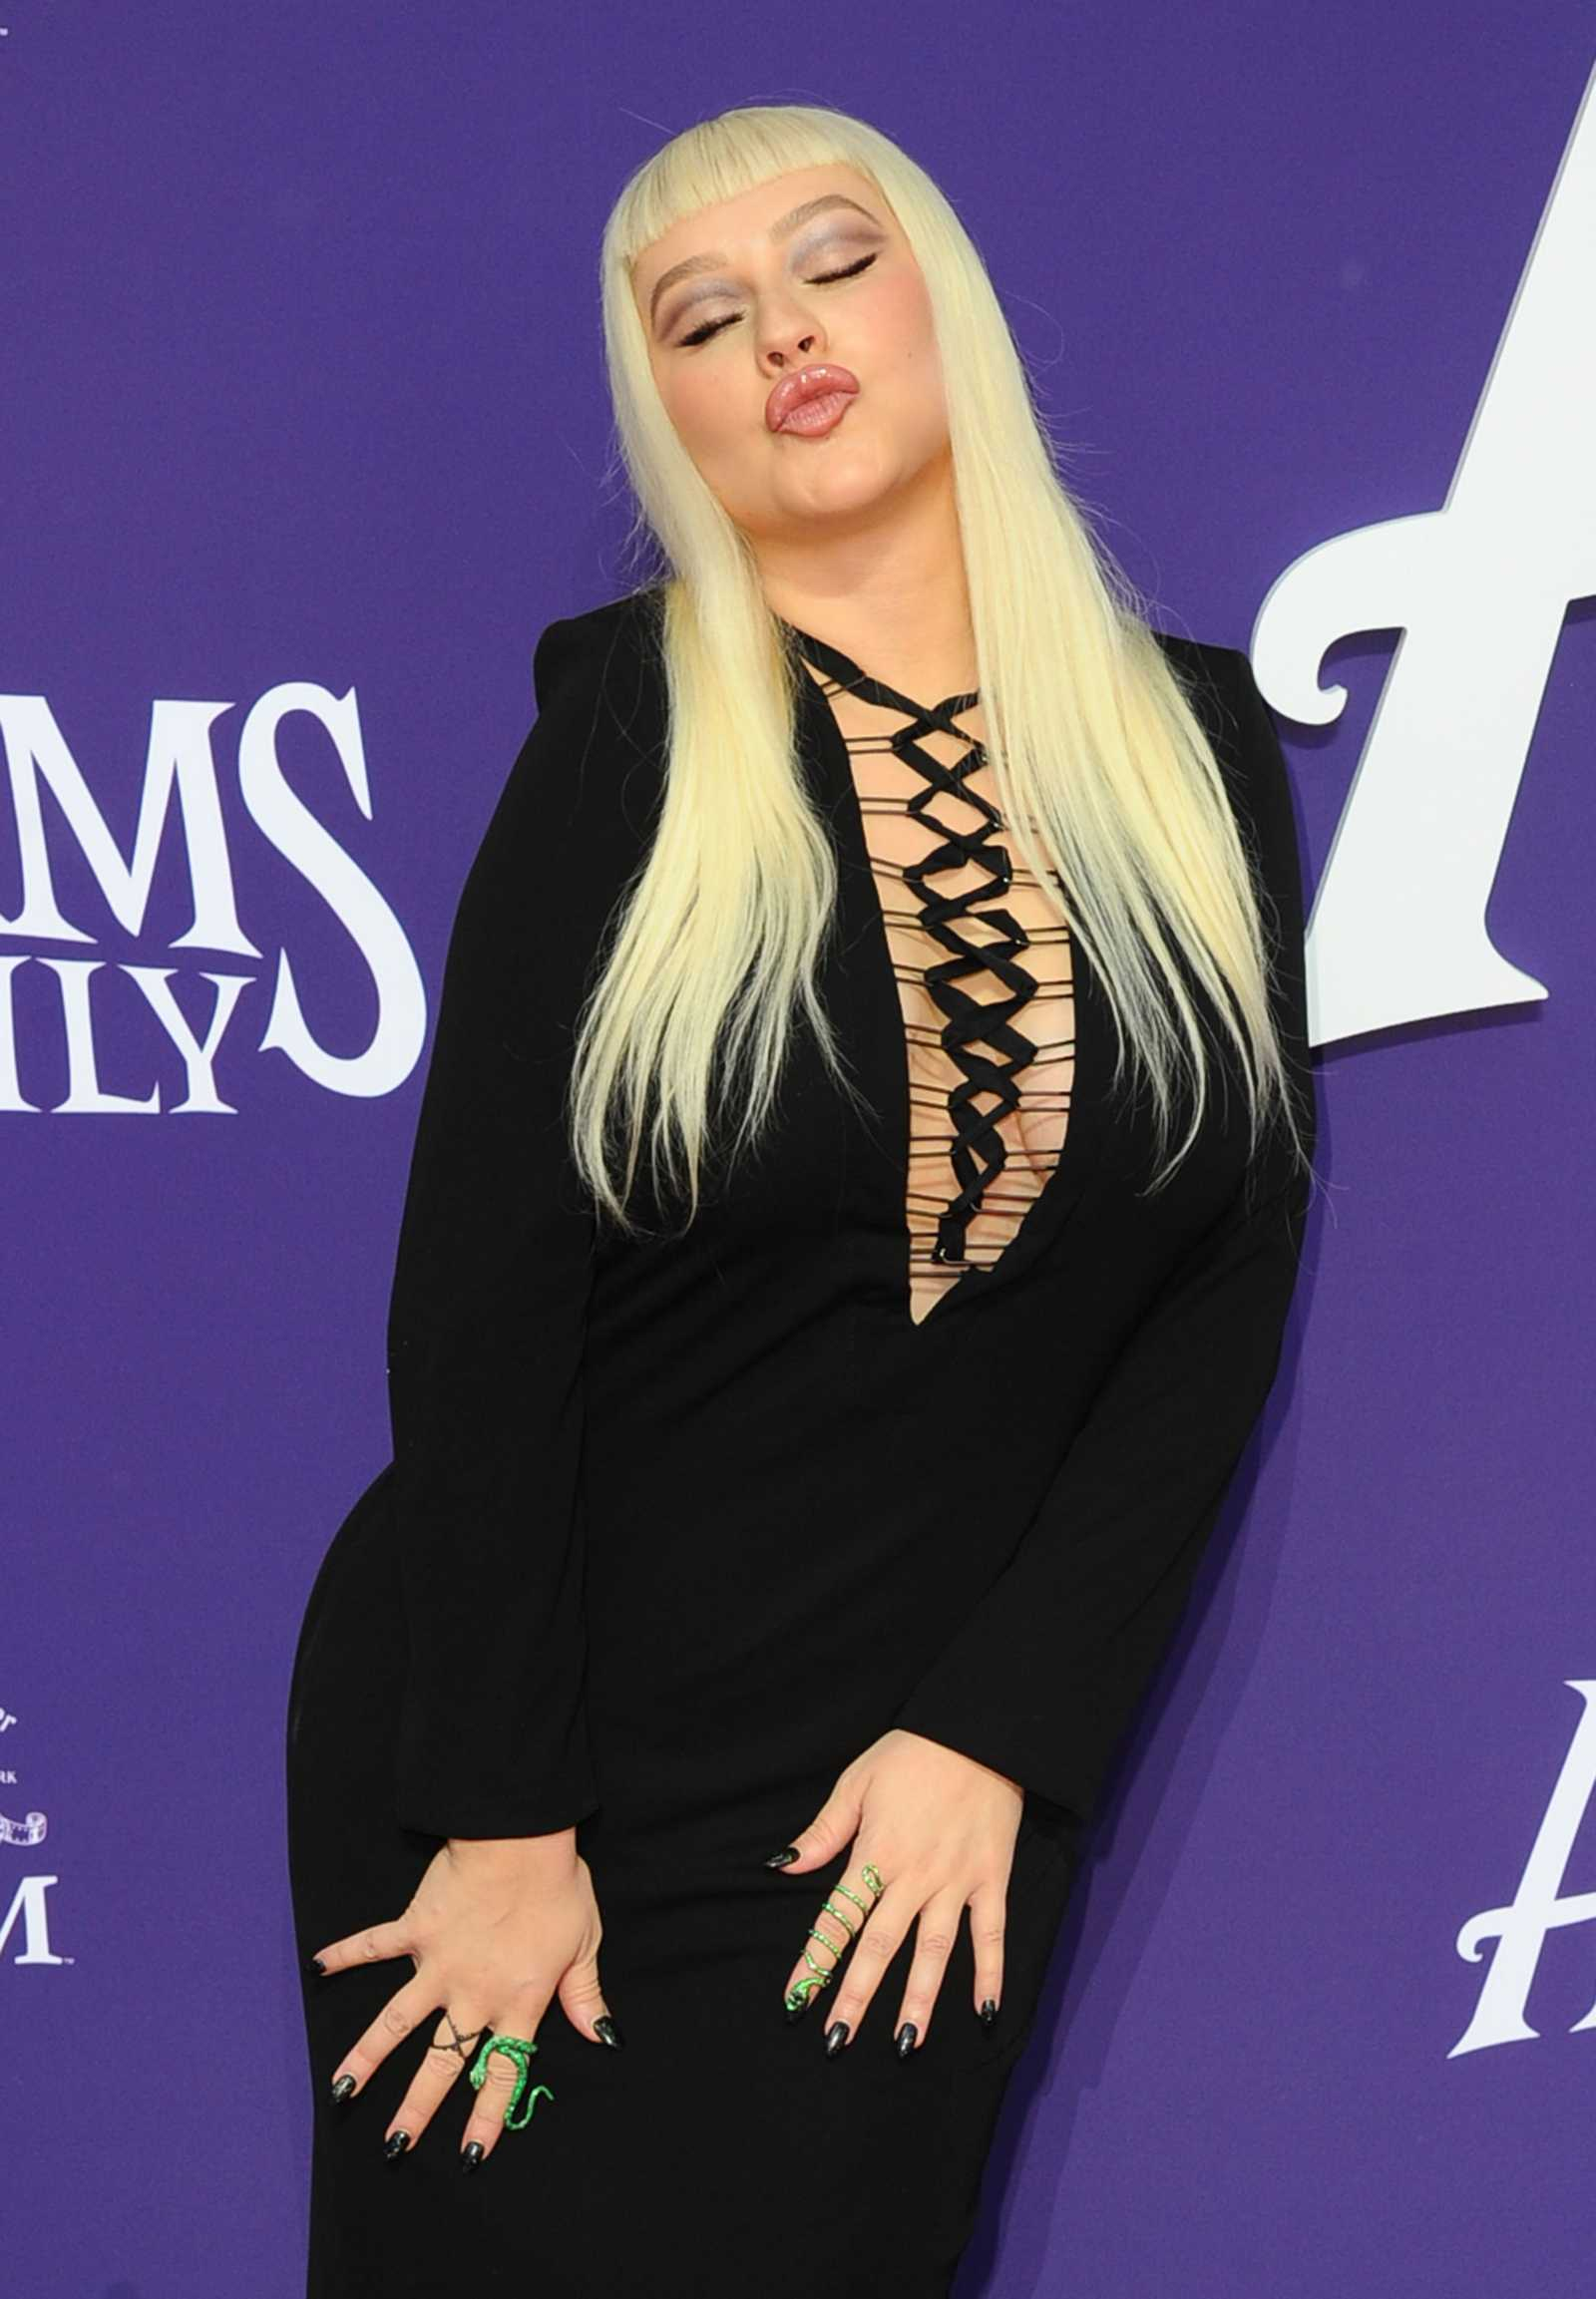 Christina_Aguilera_-_The_Addams_Family_Premiere__in_Los_Angeles_-_October_062C_2019-51.jpg